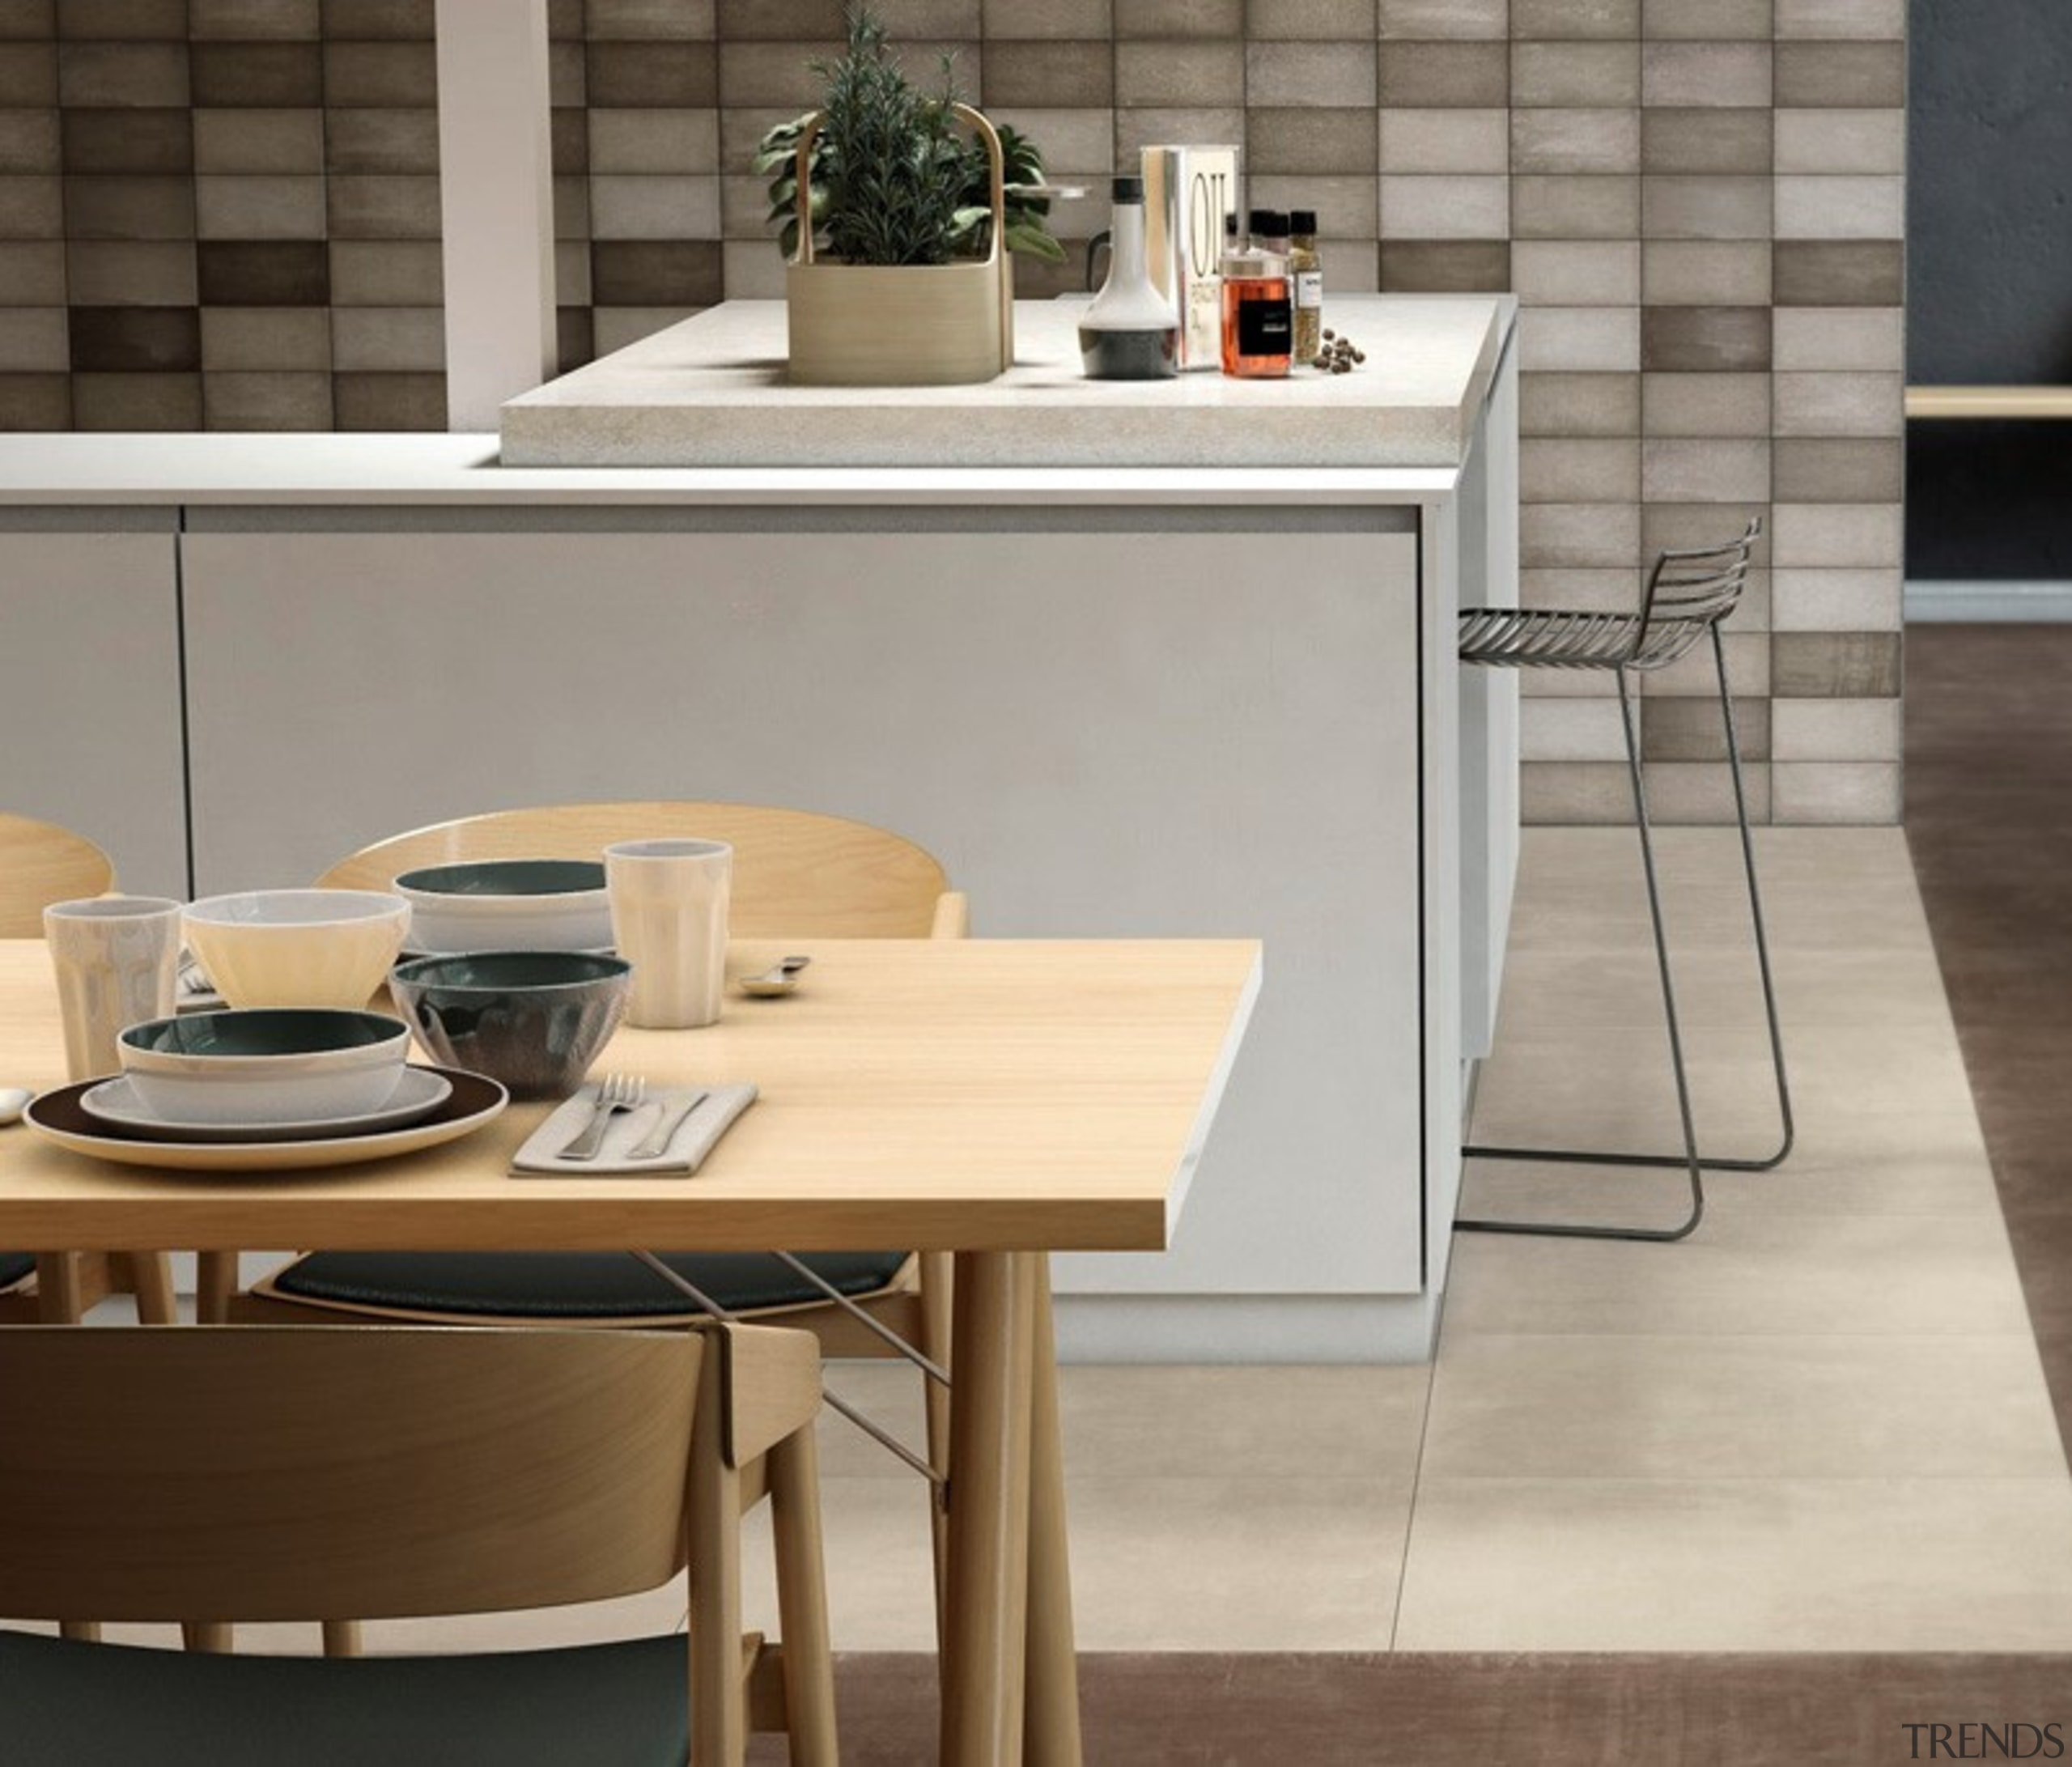 Quayside Brown 100x200 - countertop | floor | countertop, floor, flooring, furniture, interior design, kitchen, table, gray